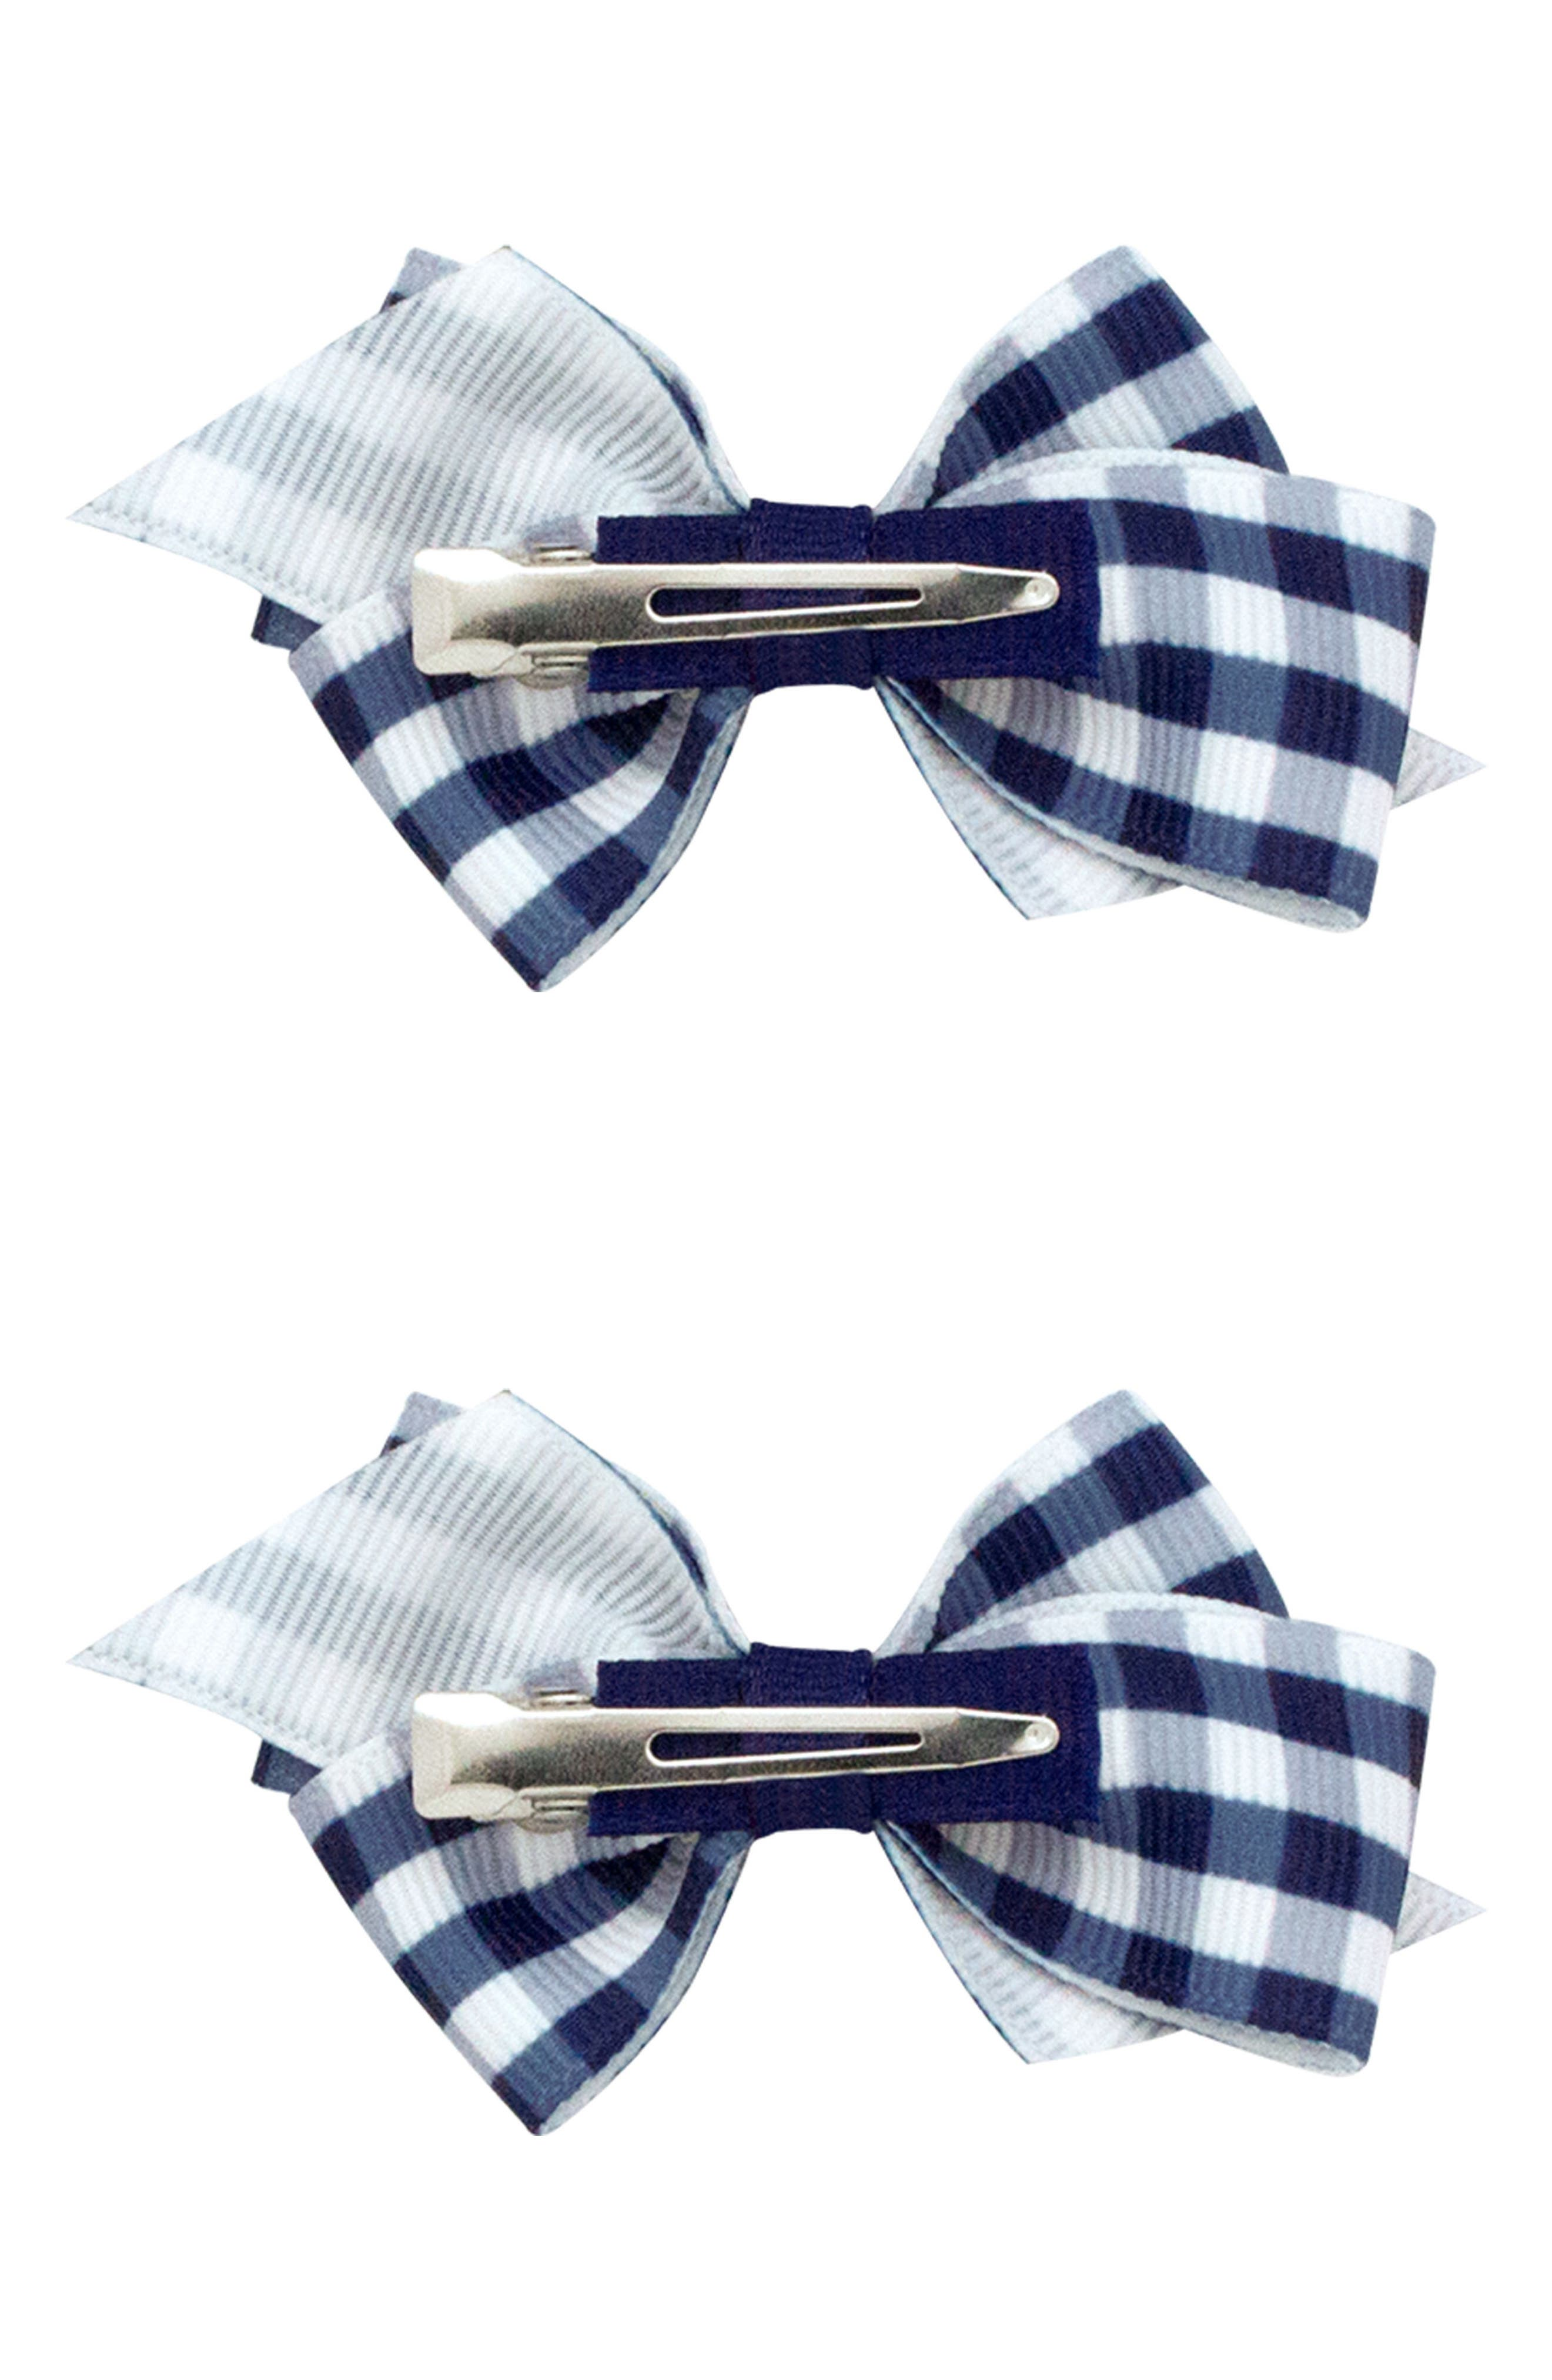 2-Pack Gingham Bow Clips,                             Alternate thumbnail 2, color,                             NAVY